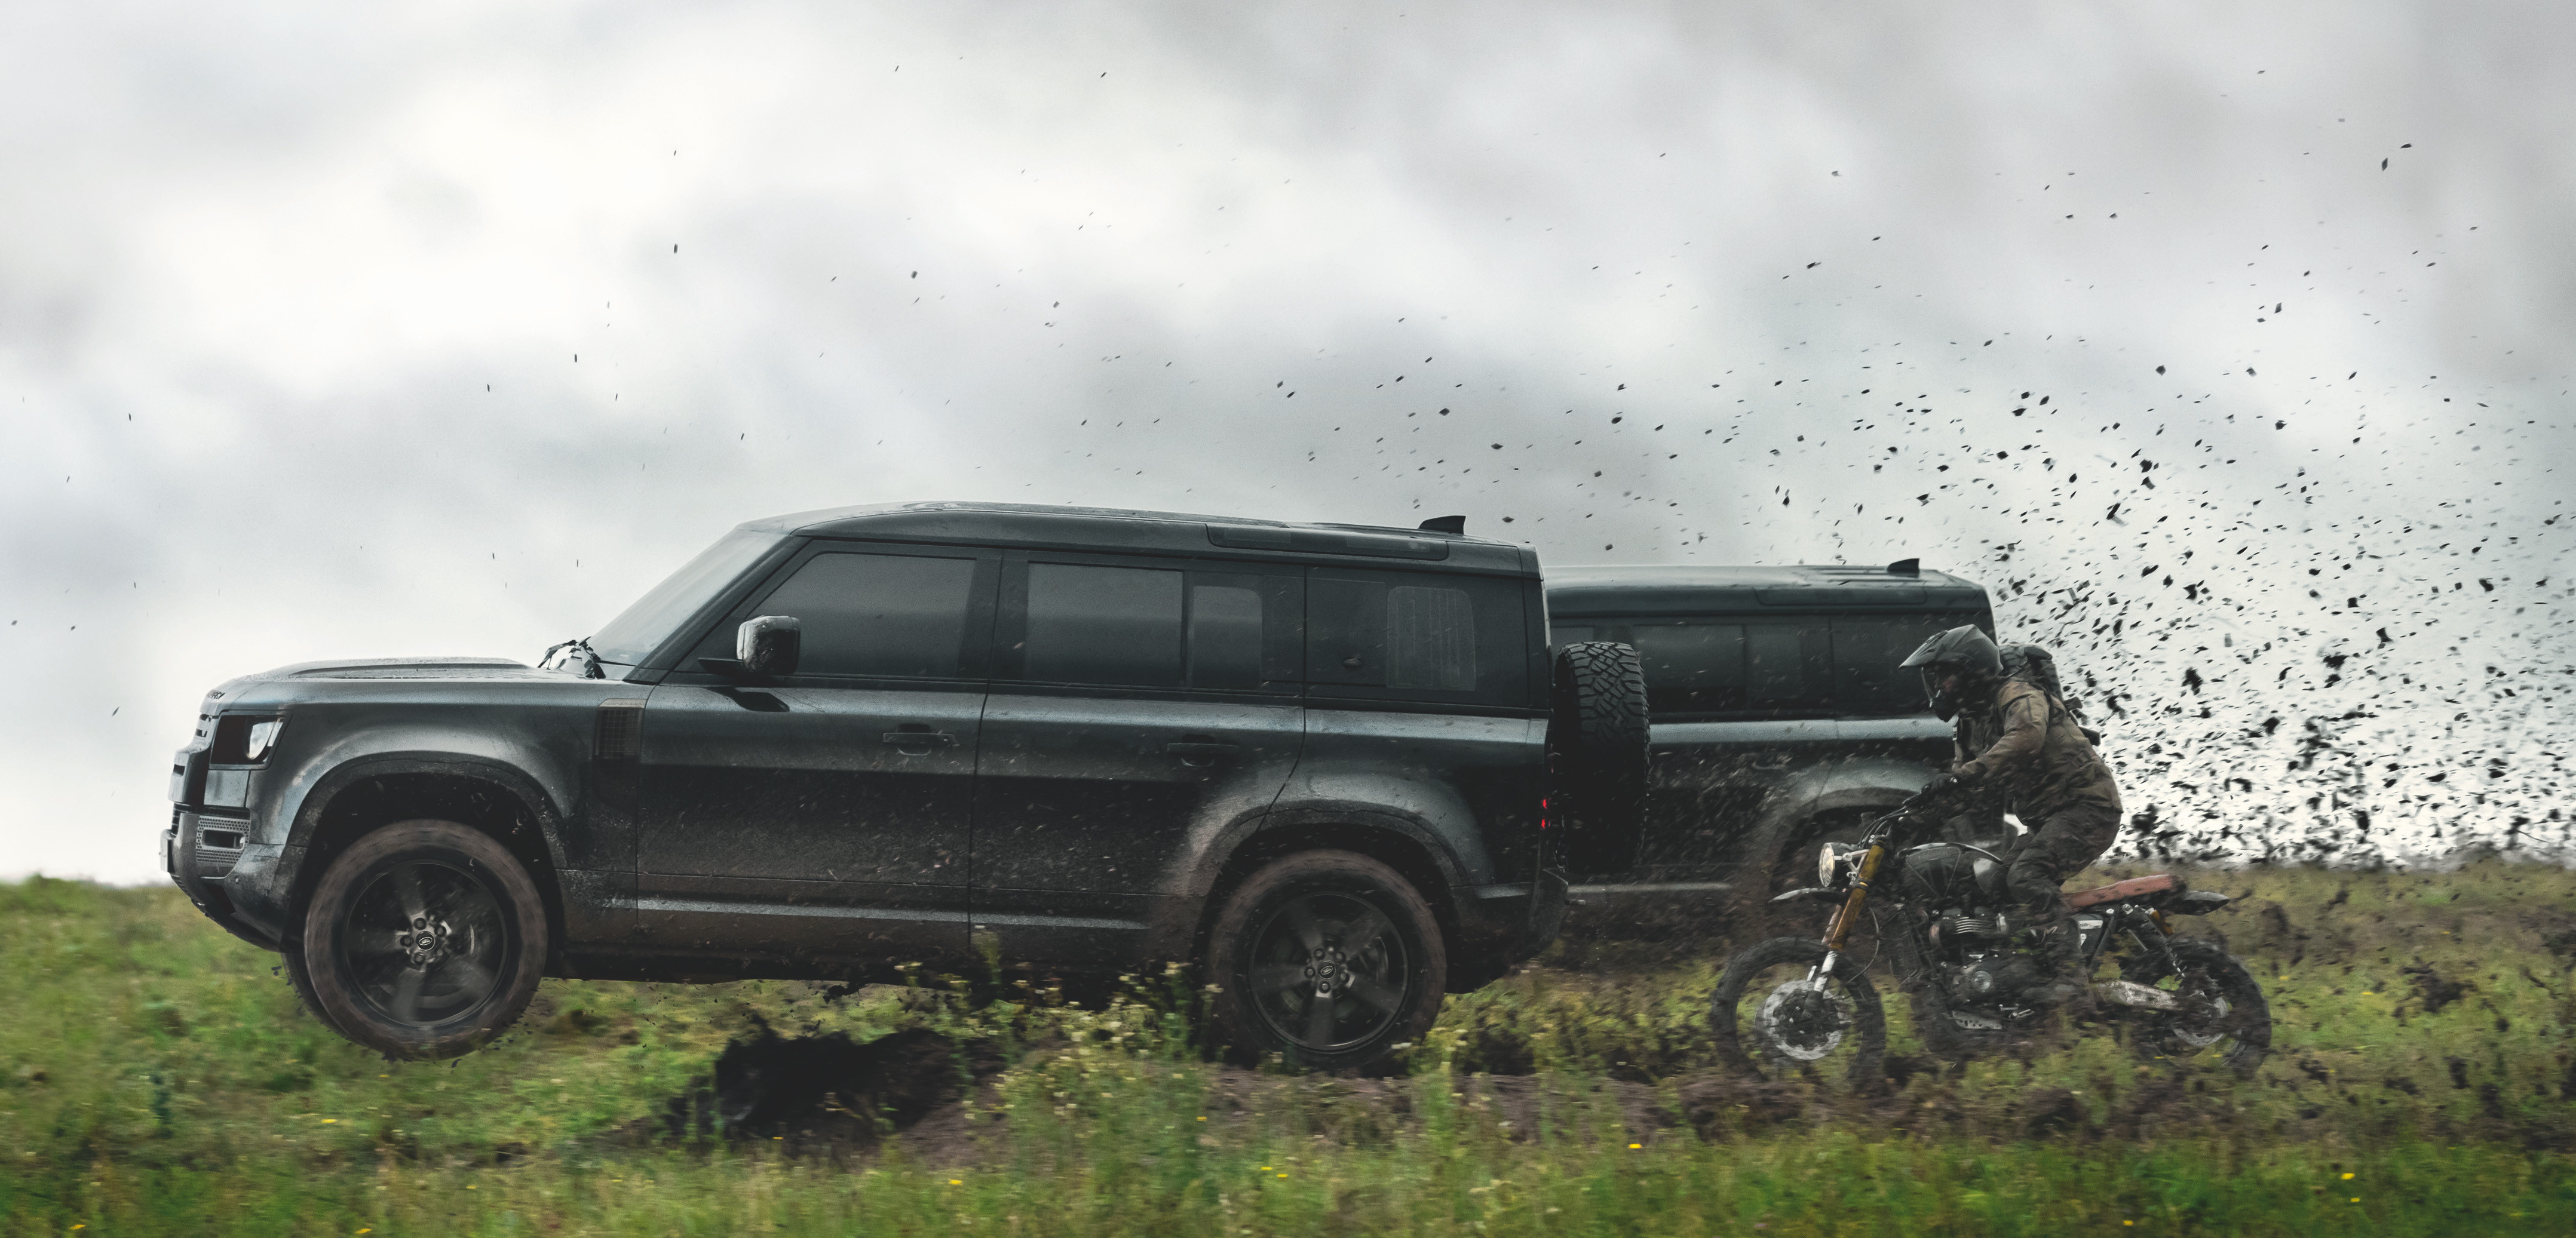 The all-black vehicle speeds through a muddy field in the promotional video